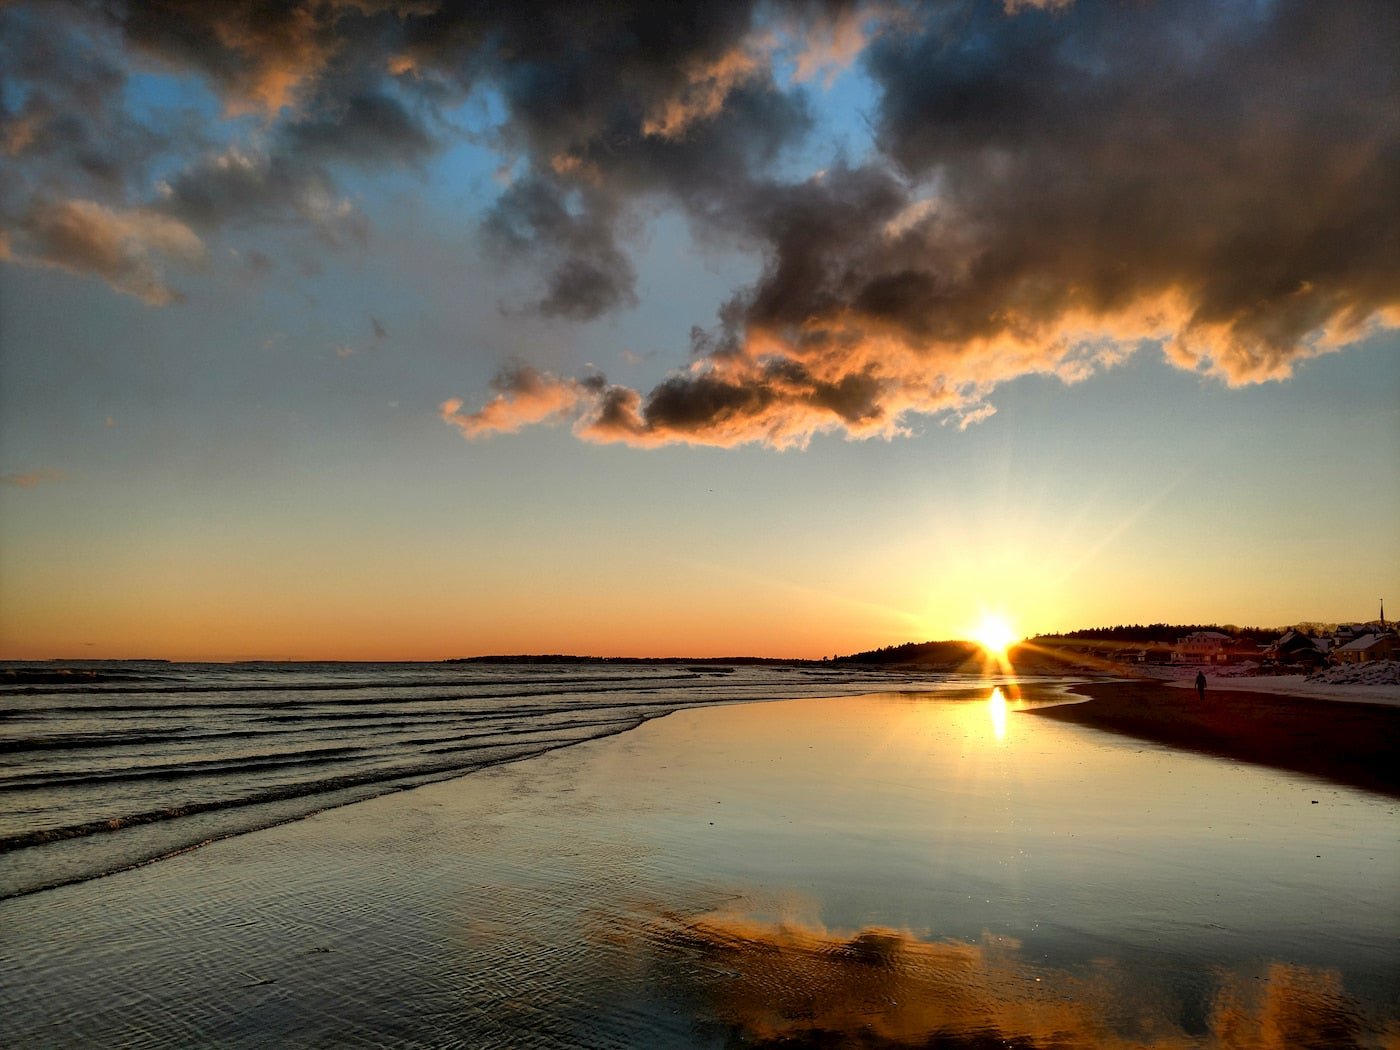 Sunset over a long stretch of beach at low tide.